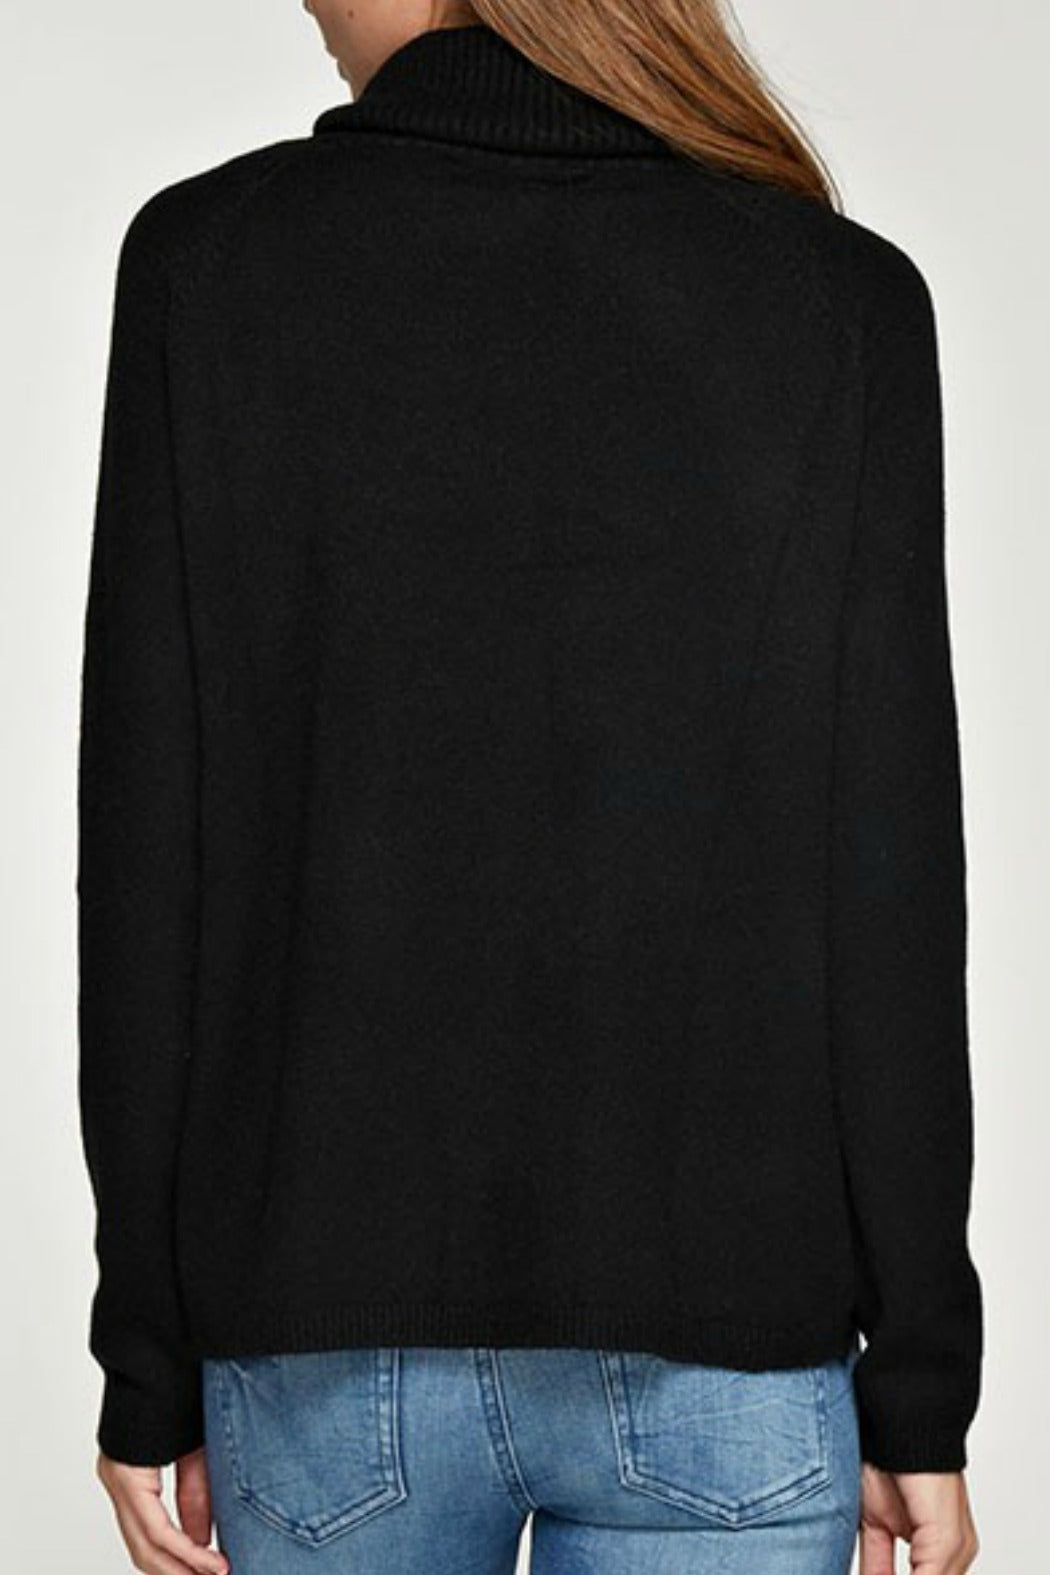 Pocket Turtleneck Pullover (more colors)